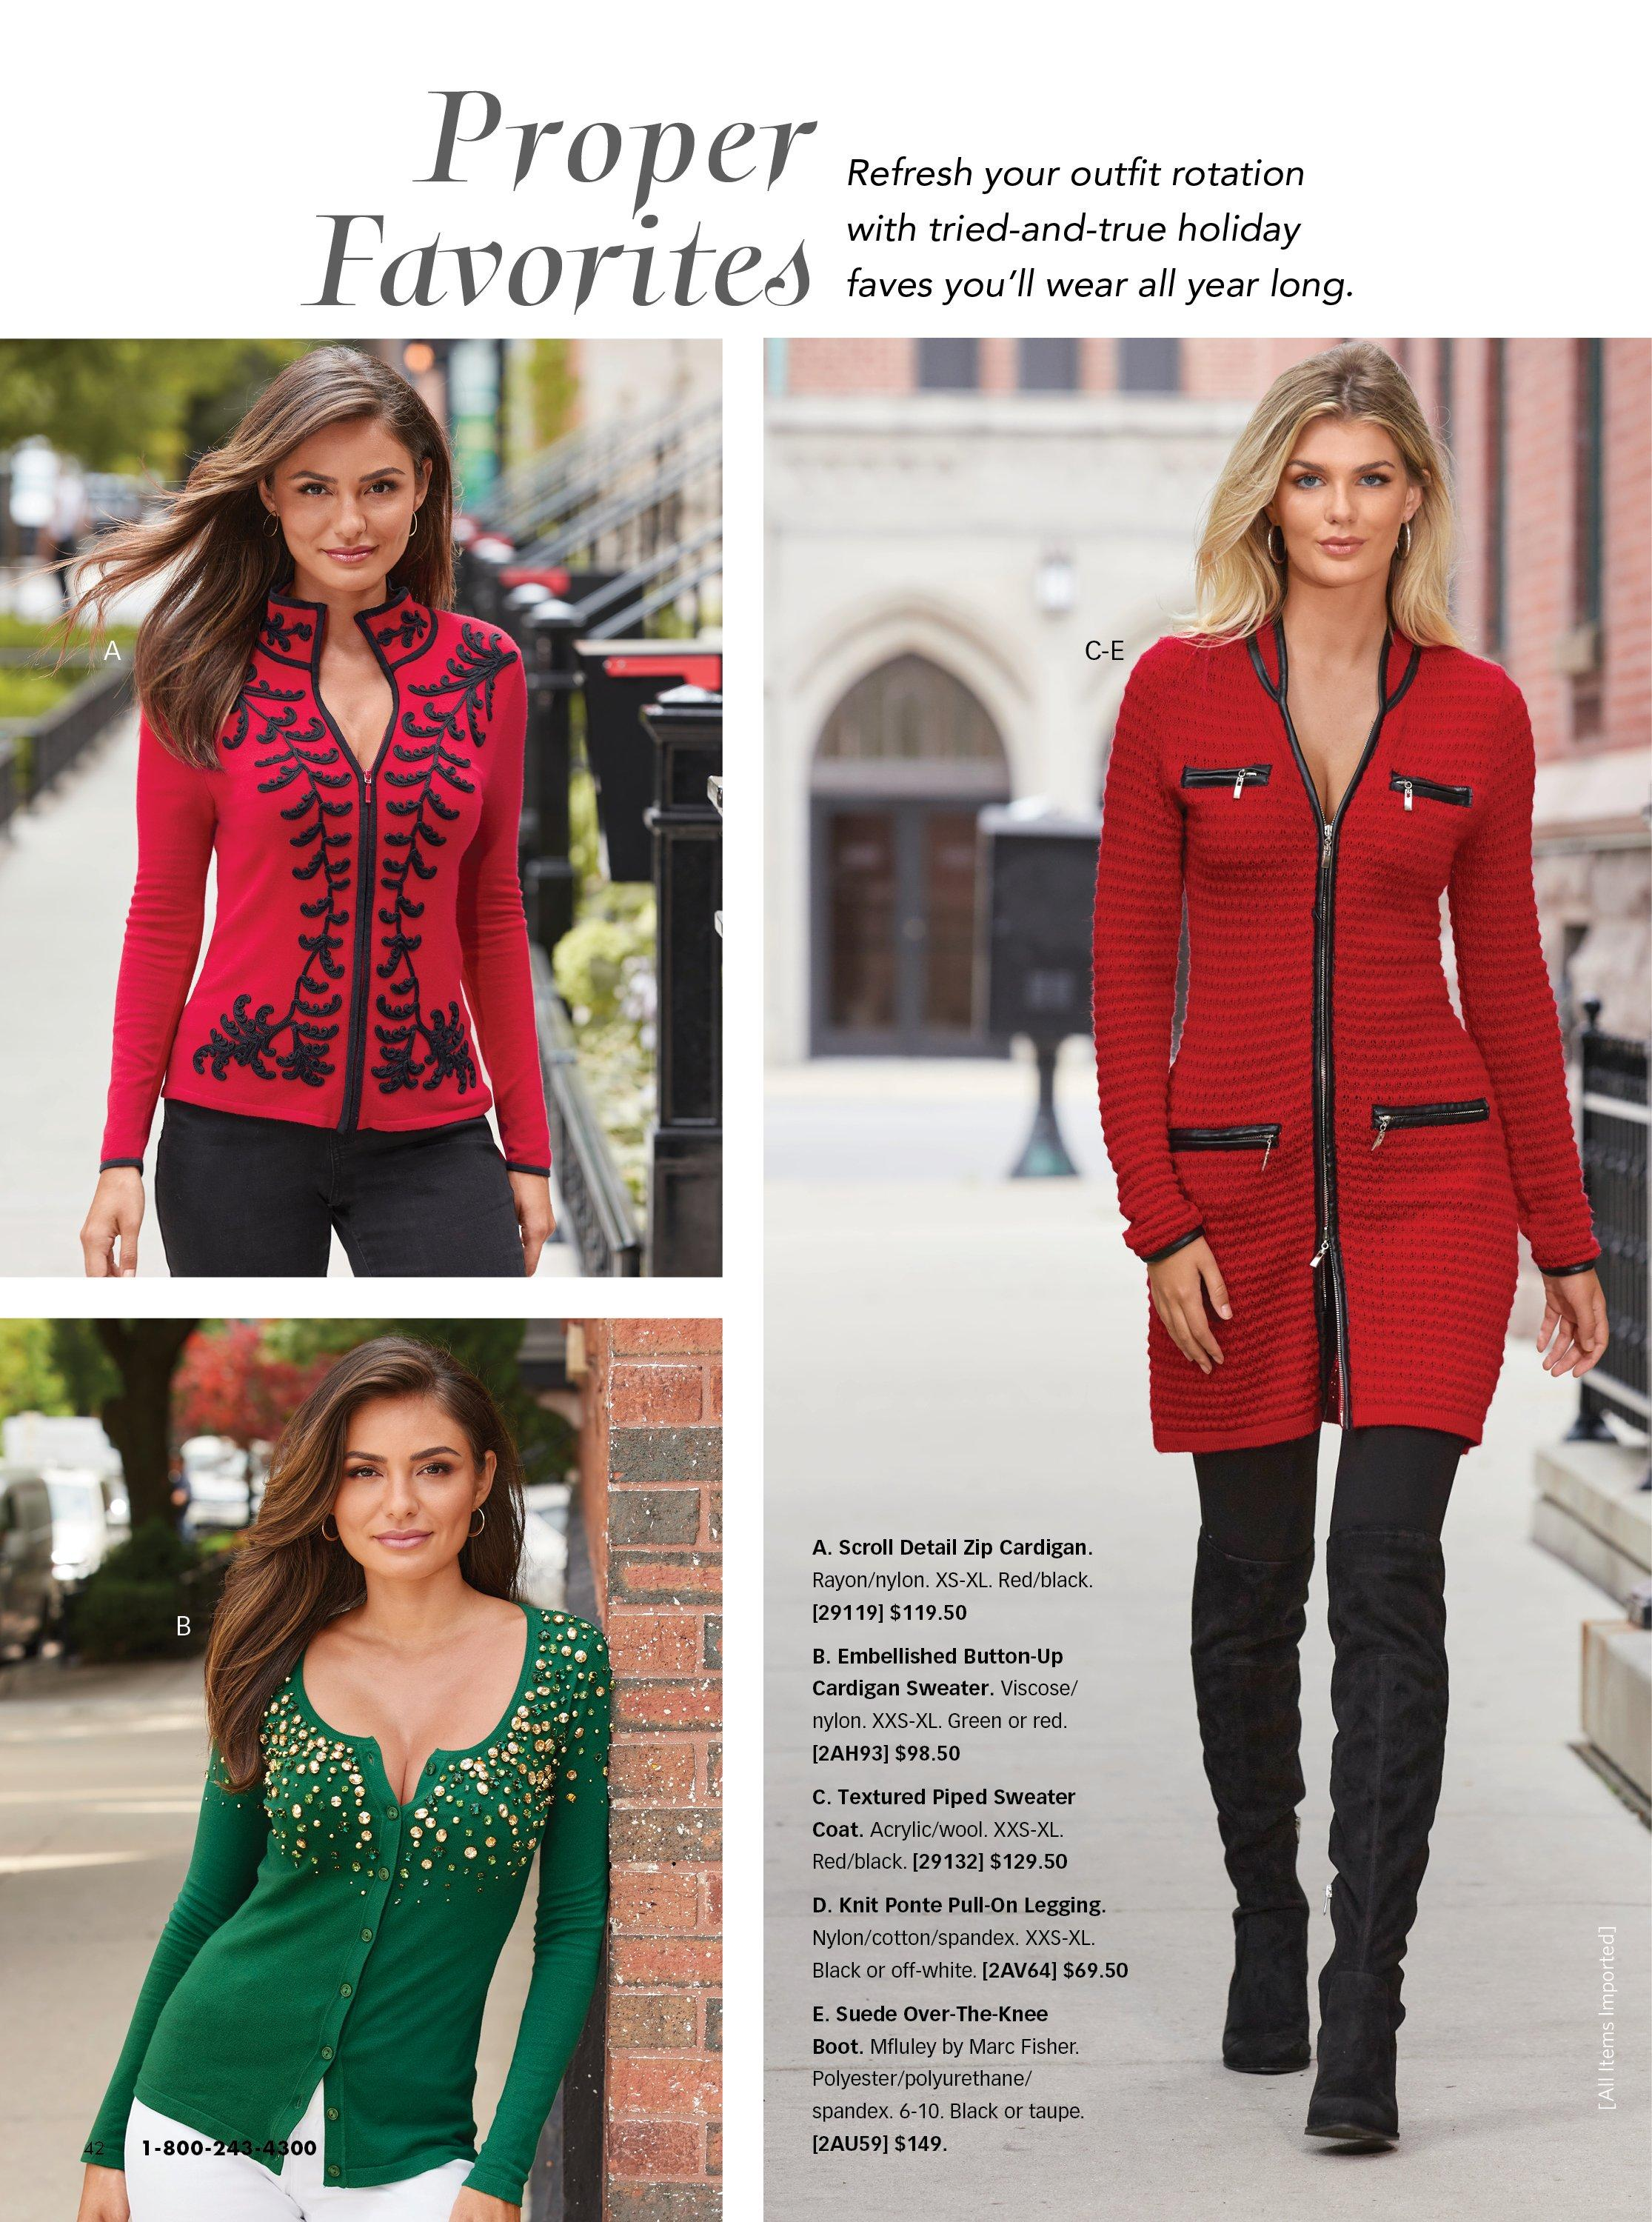 top left model wearing a red and black scroll detail zip-up cardigan. bottom left model wearing a green jewel embellished button-up cardigan. right model wearing a red and black textured sweater coat, black leggings, and black over-the-knee boots.